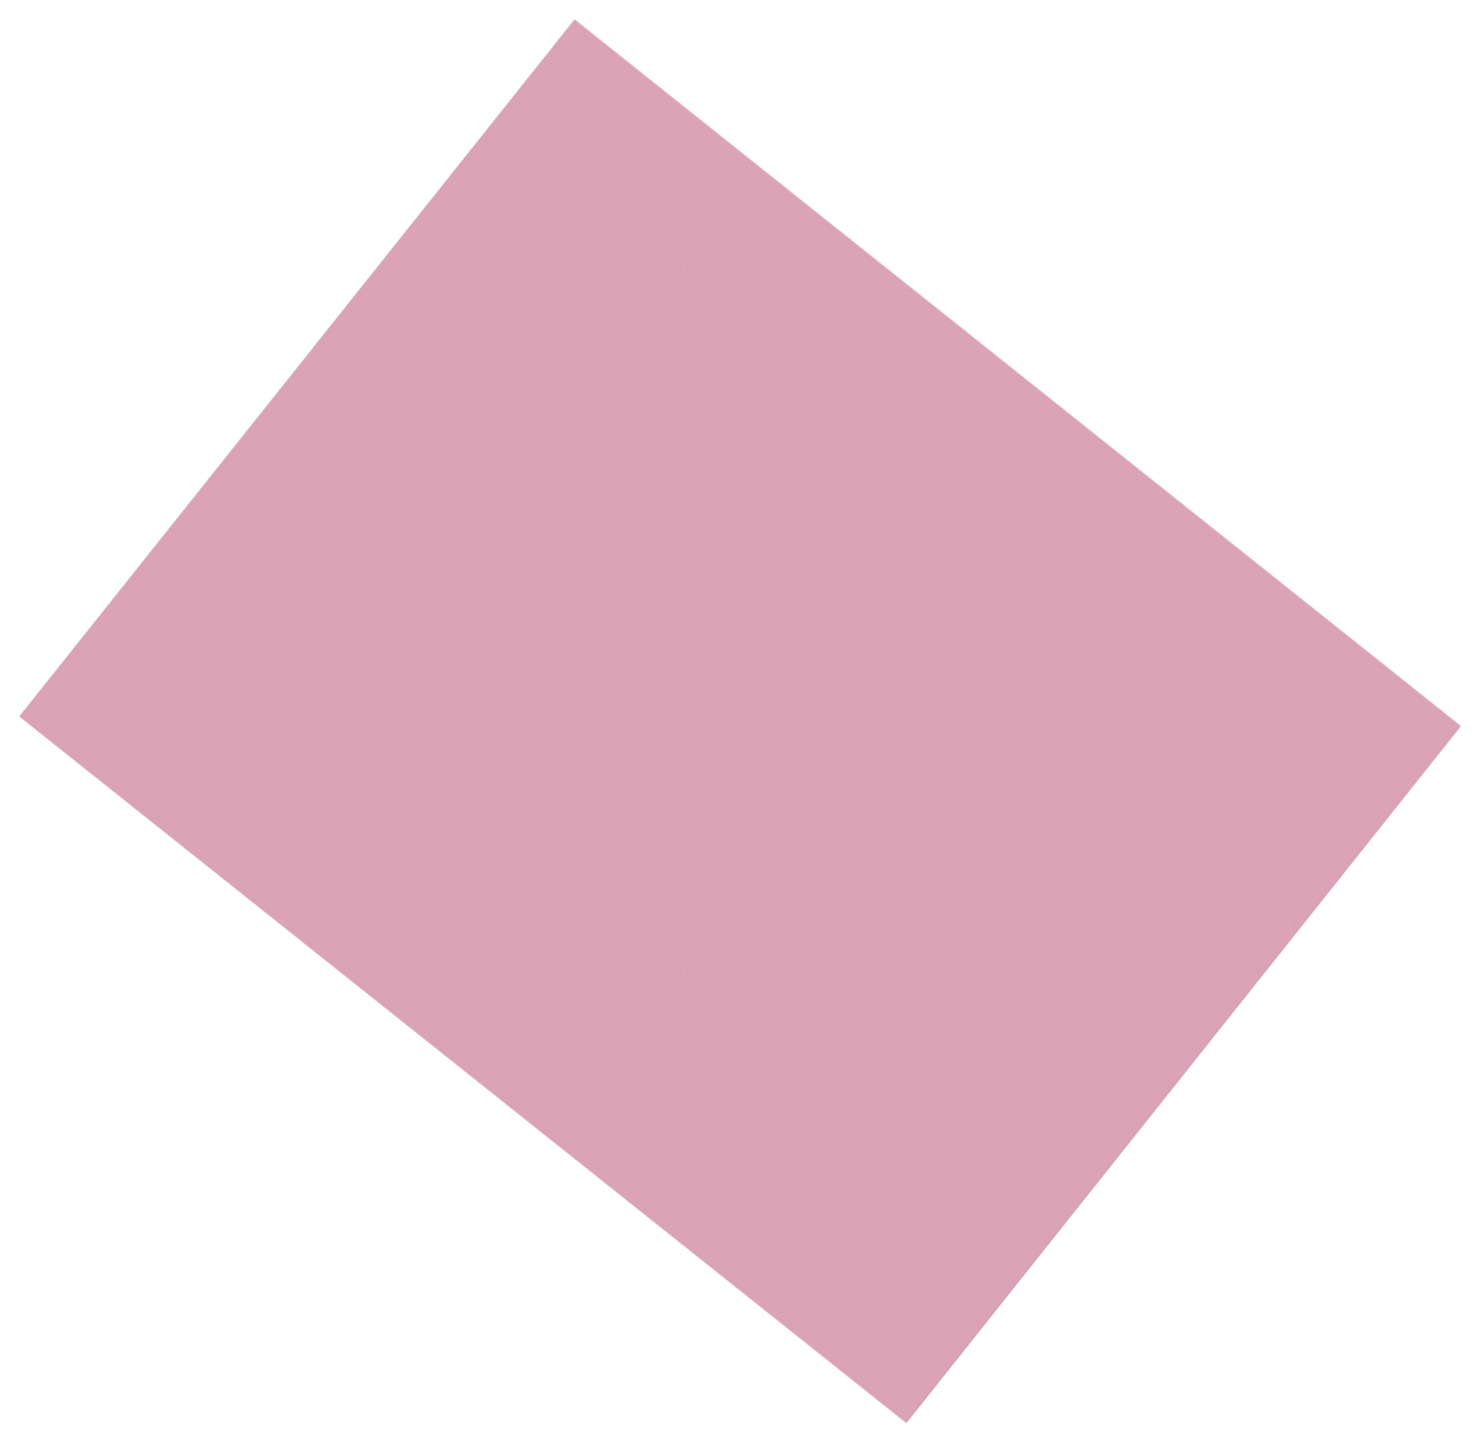 pacon coated poster board 22x28 inches pink pack of 25 soar